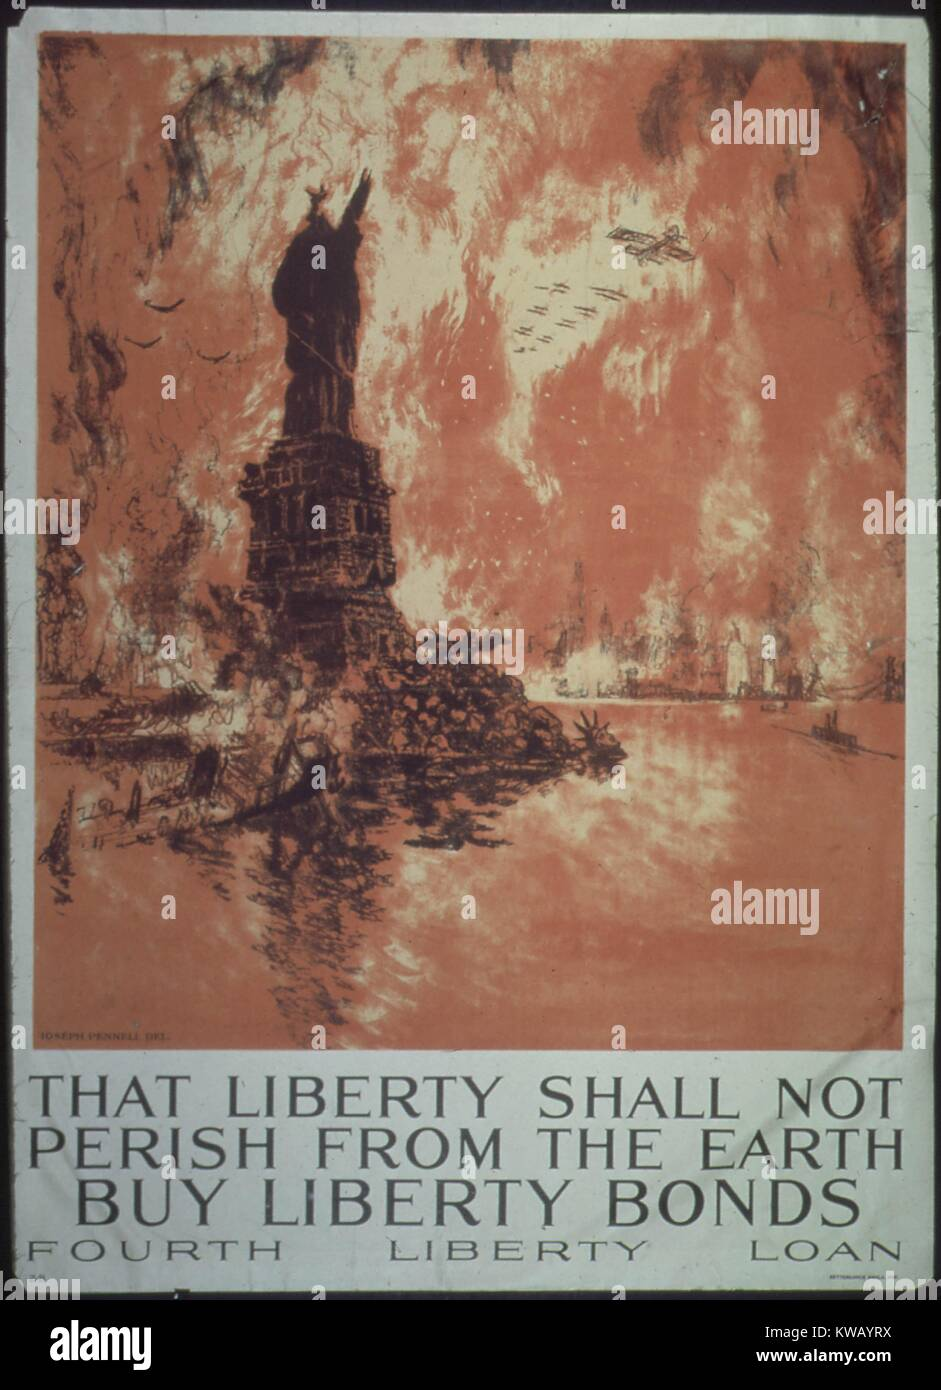 Advertisement for Fourth Liberty Loan: 'that liberty shall not perish from the earth, buy liberty bonds.', - Stock Image